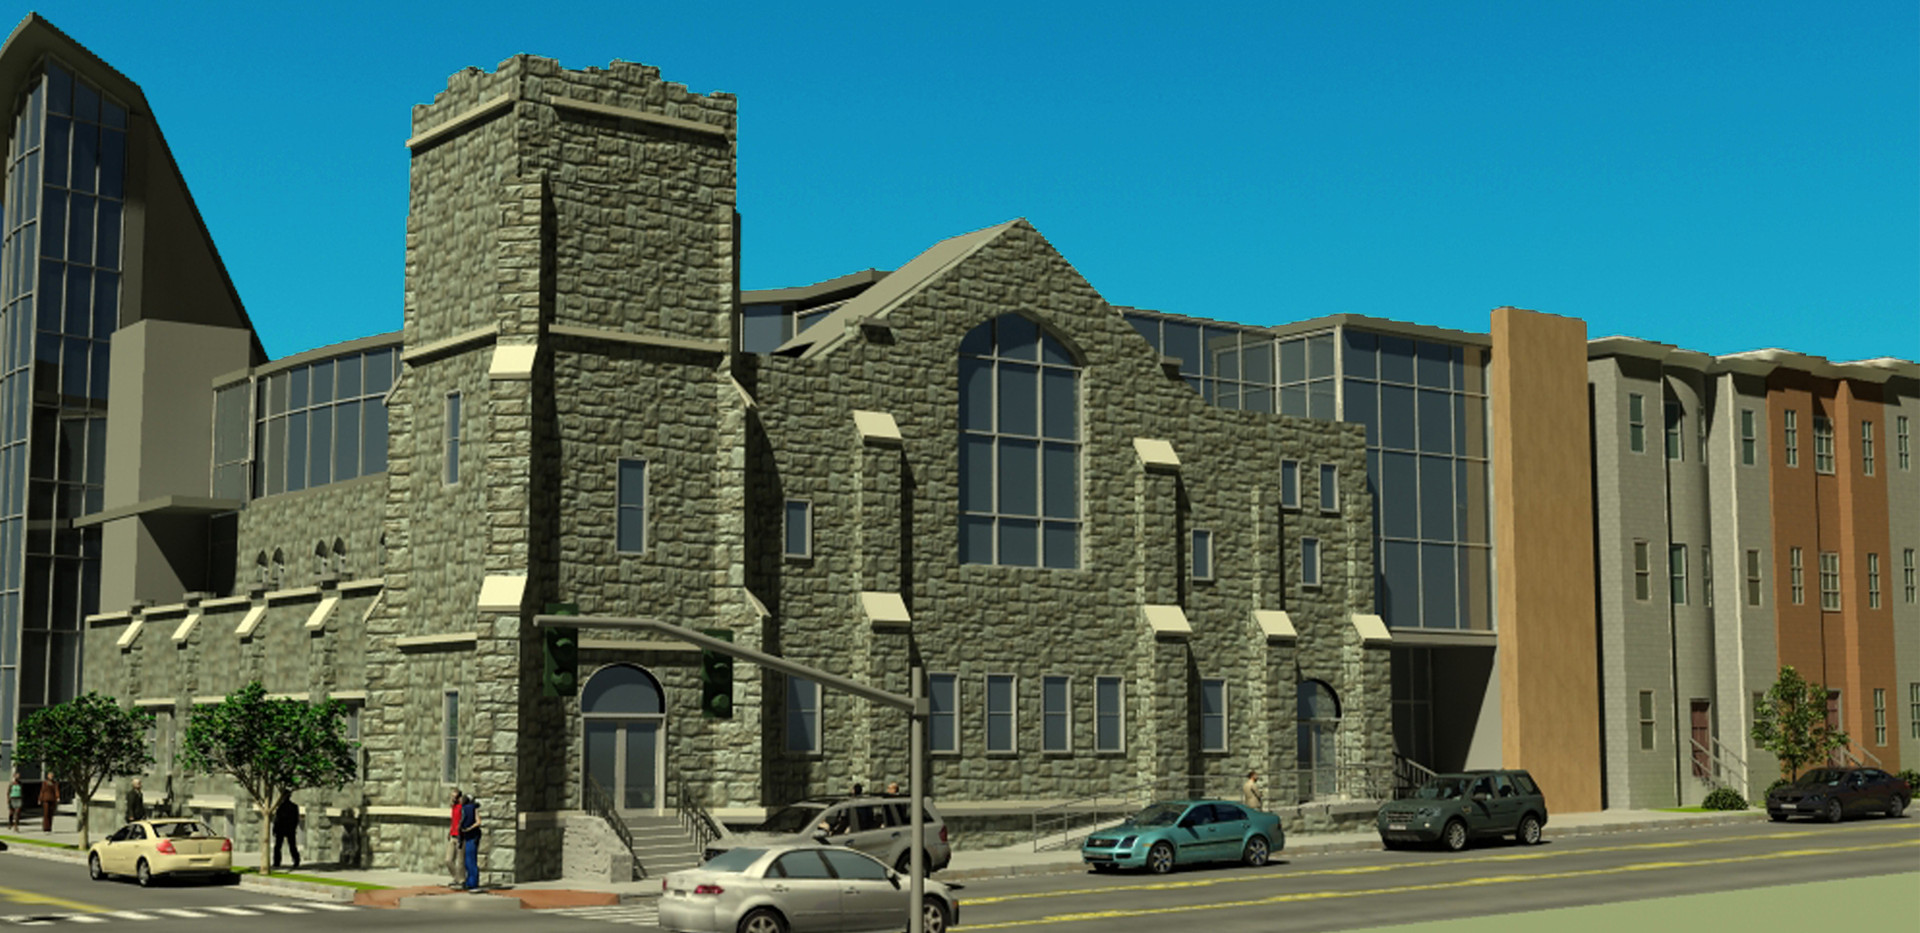 Zion Baptist Church - East Rendering